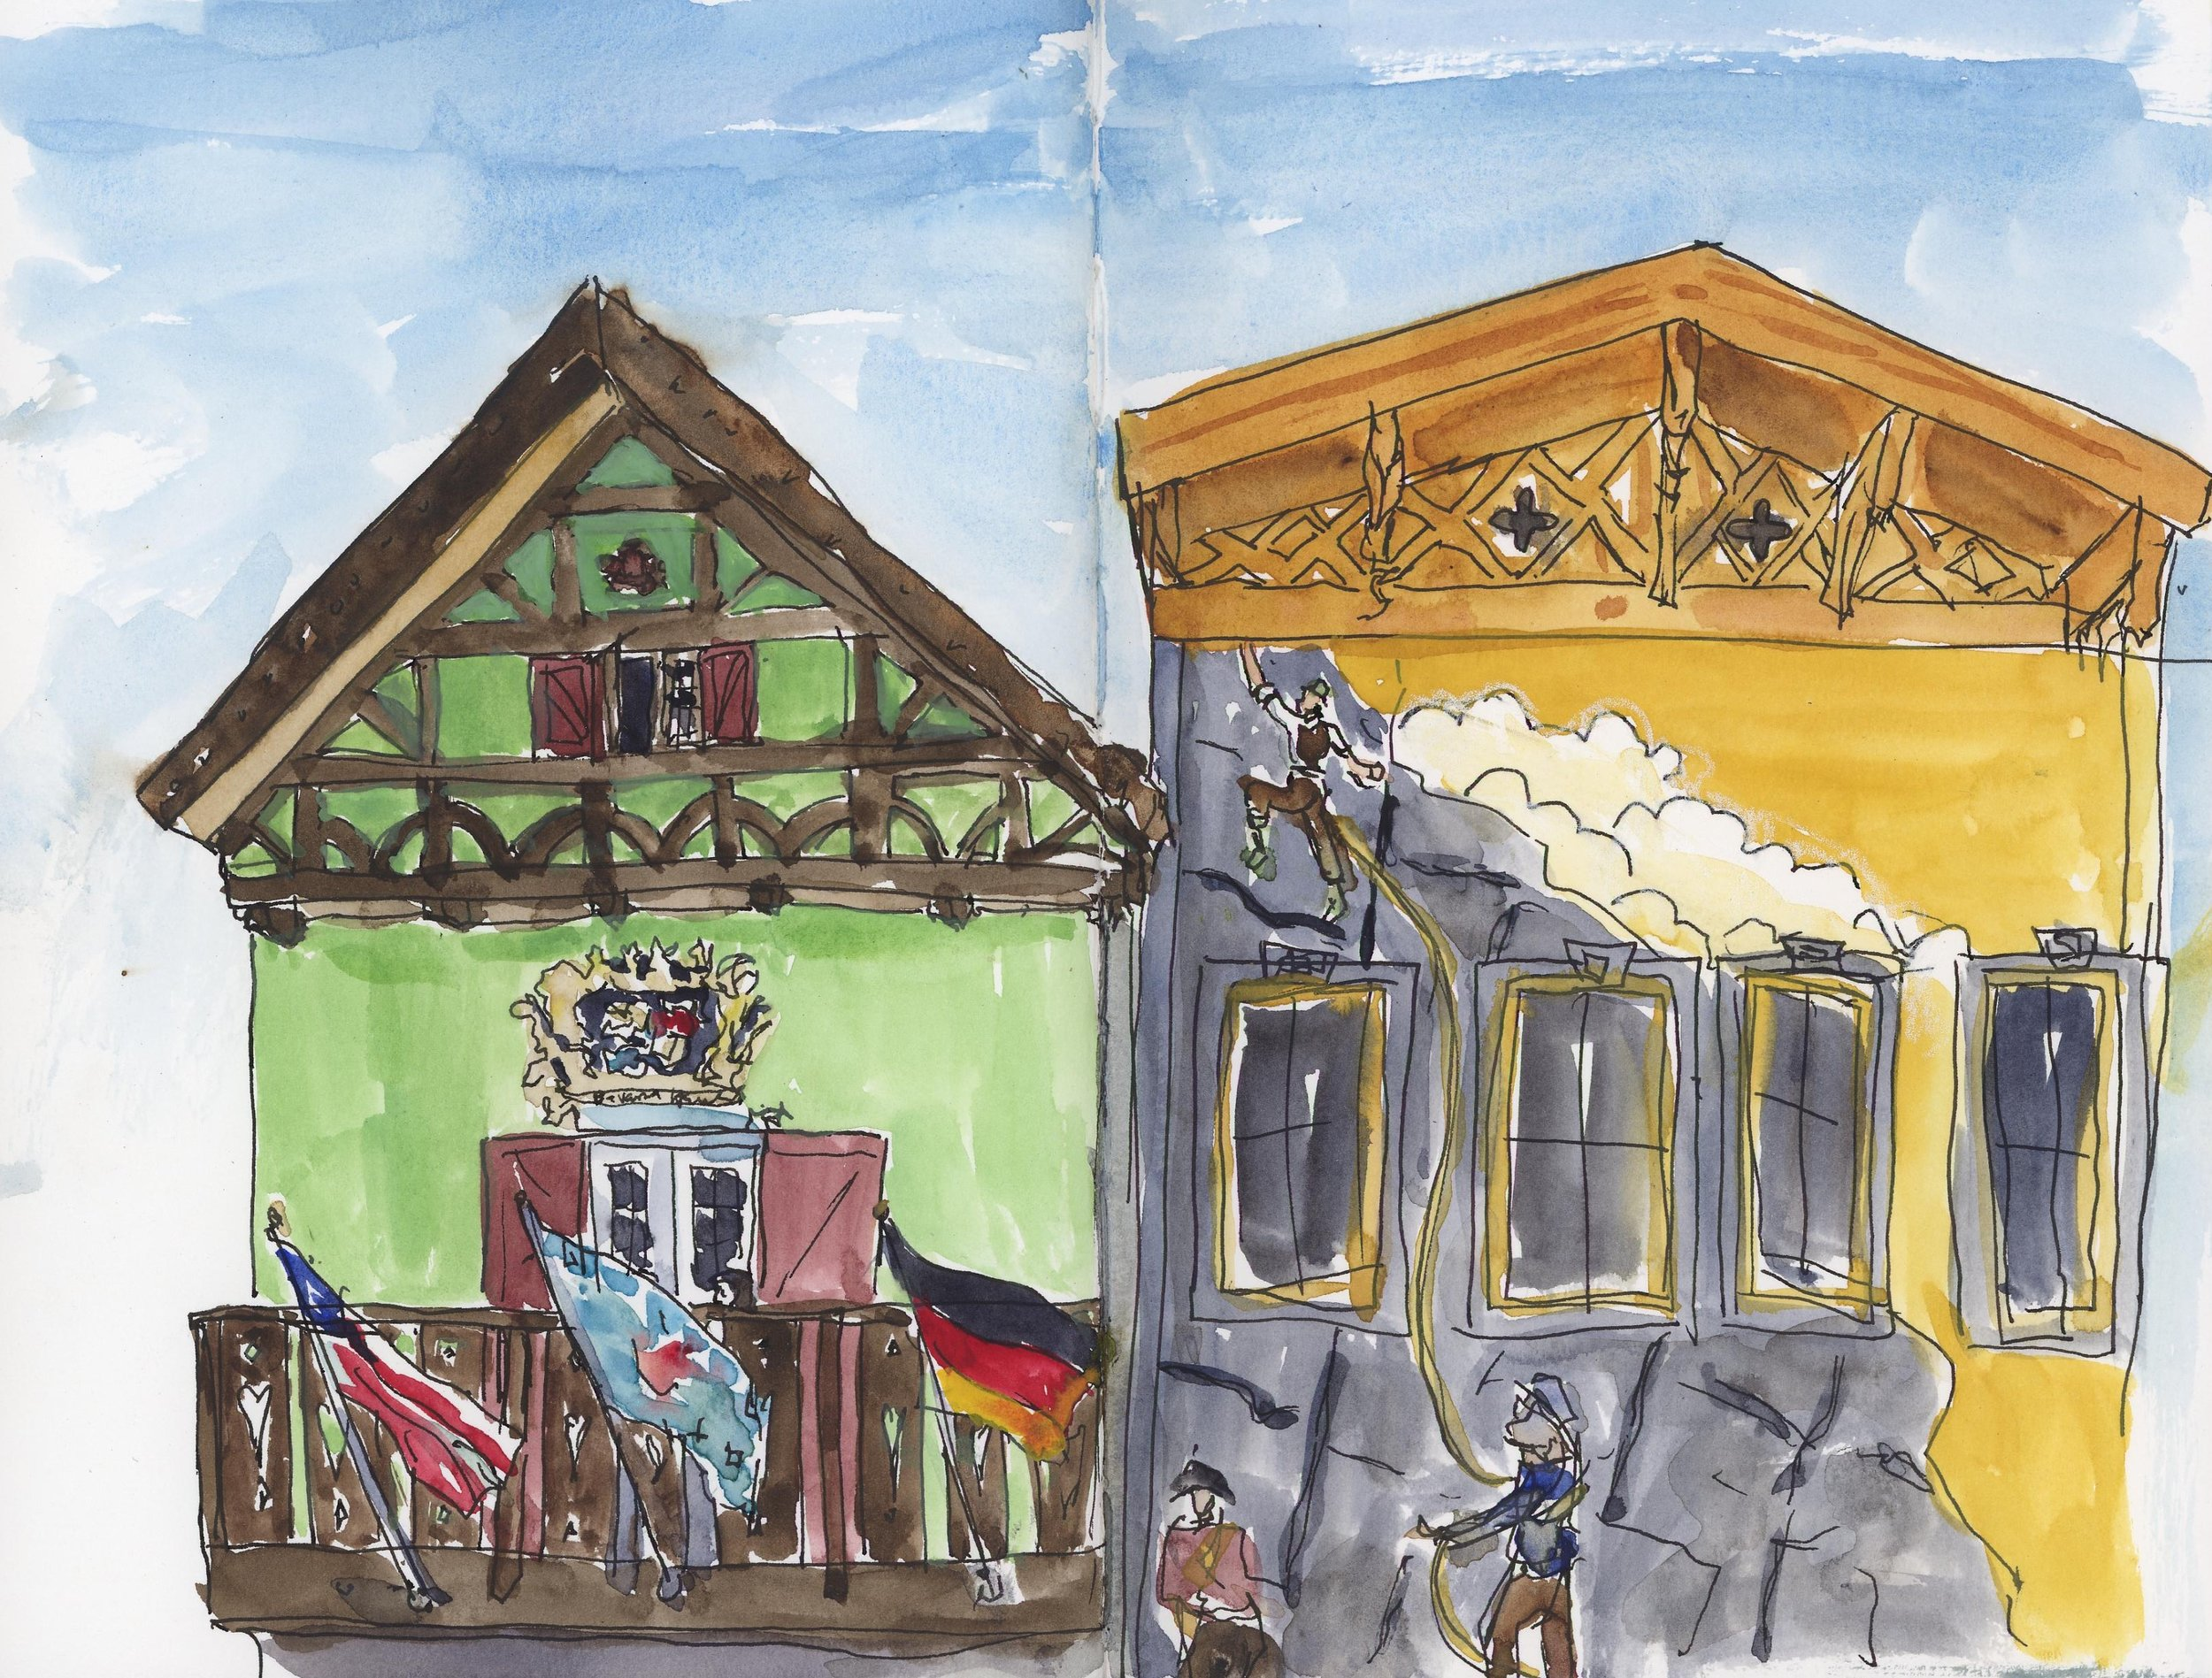 It was the Accordion Festival at Leavenworth so we got serenaded by a lot of polka. A concert was going on right behind me as I sketched the fancy facades of these buildings.